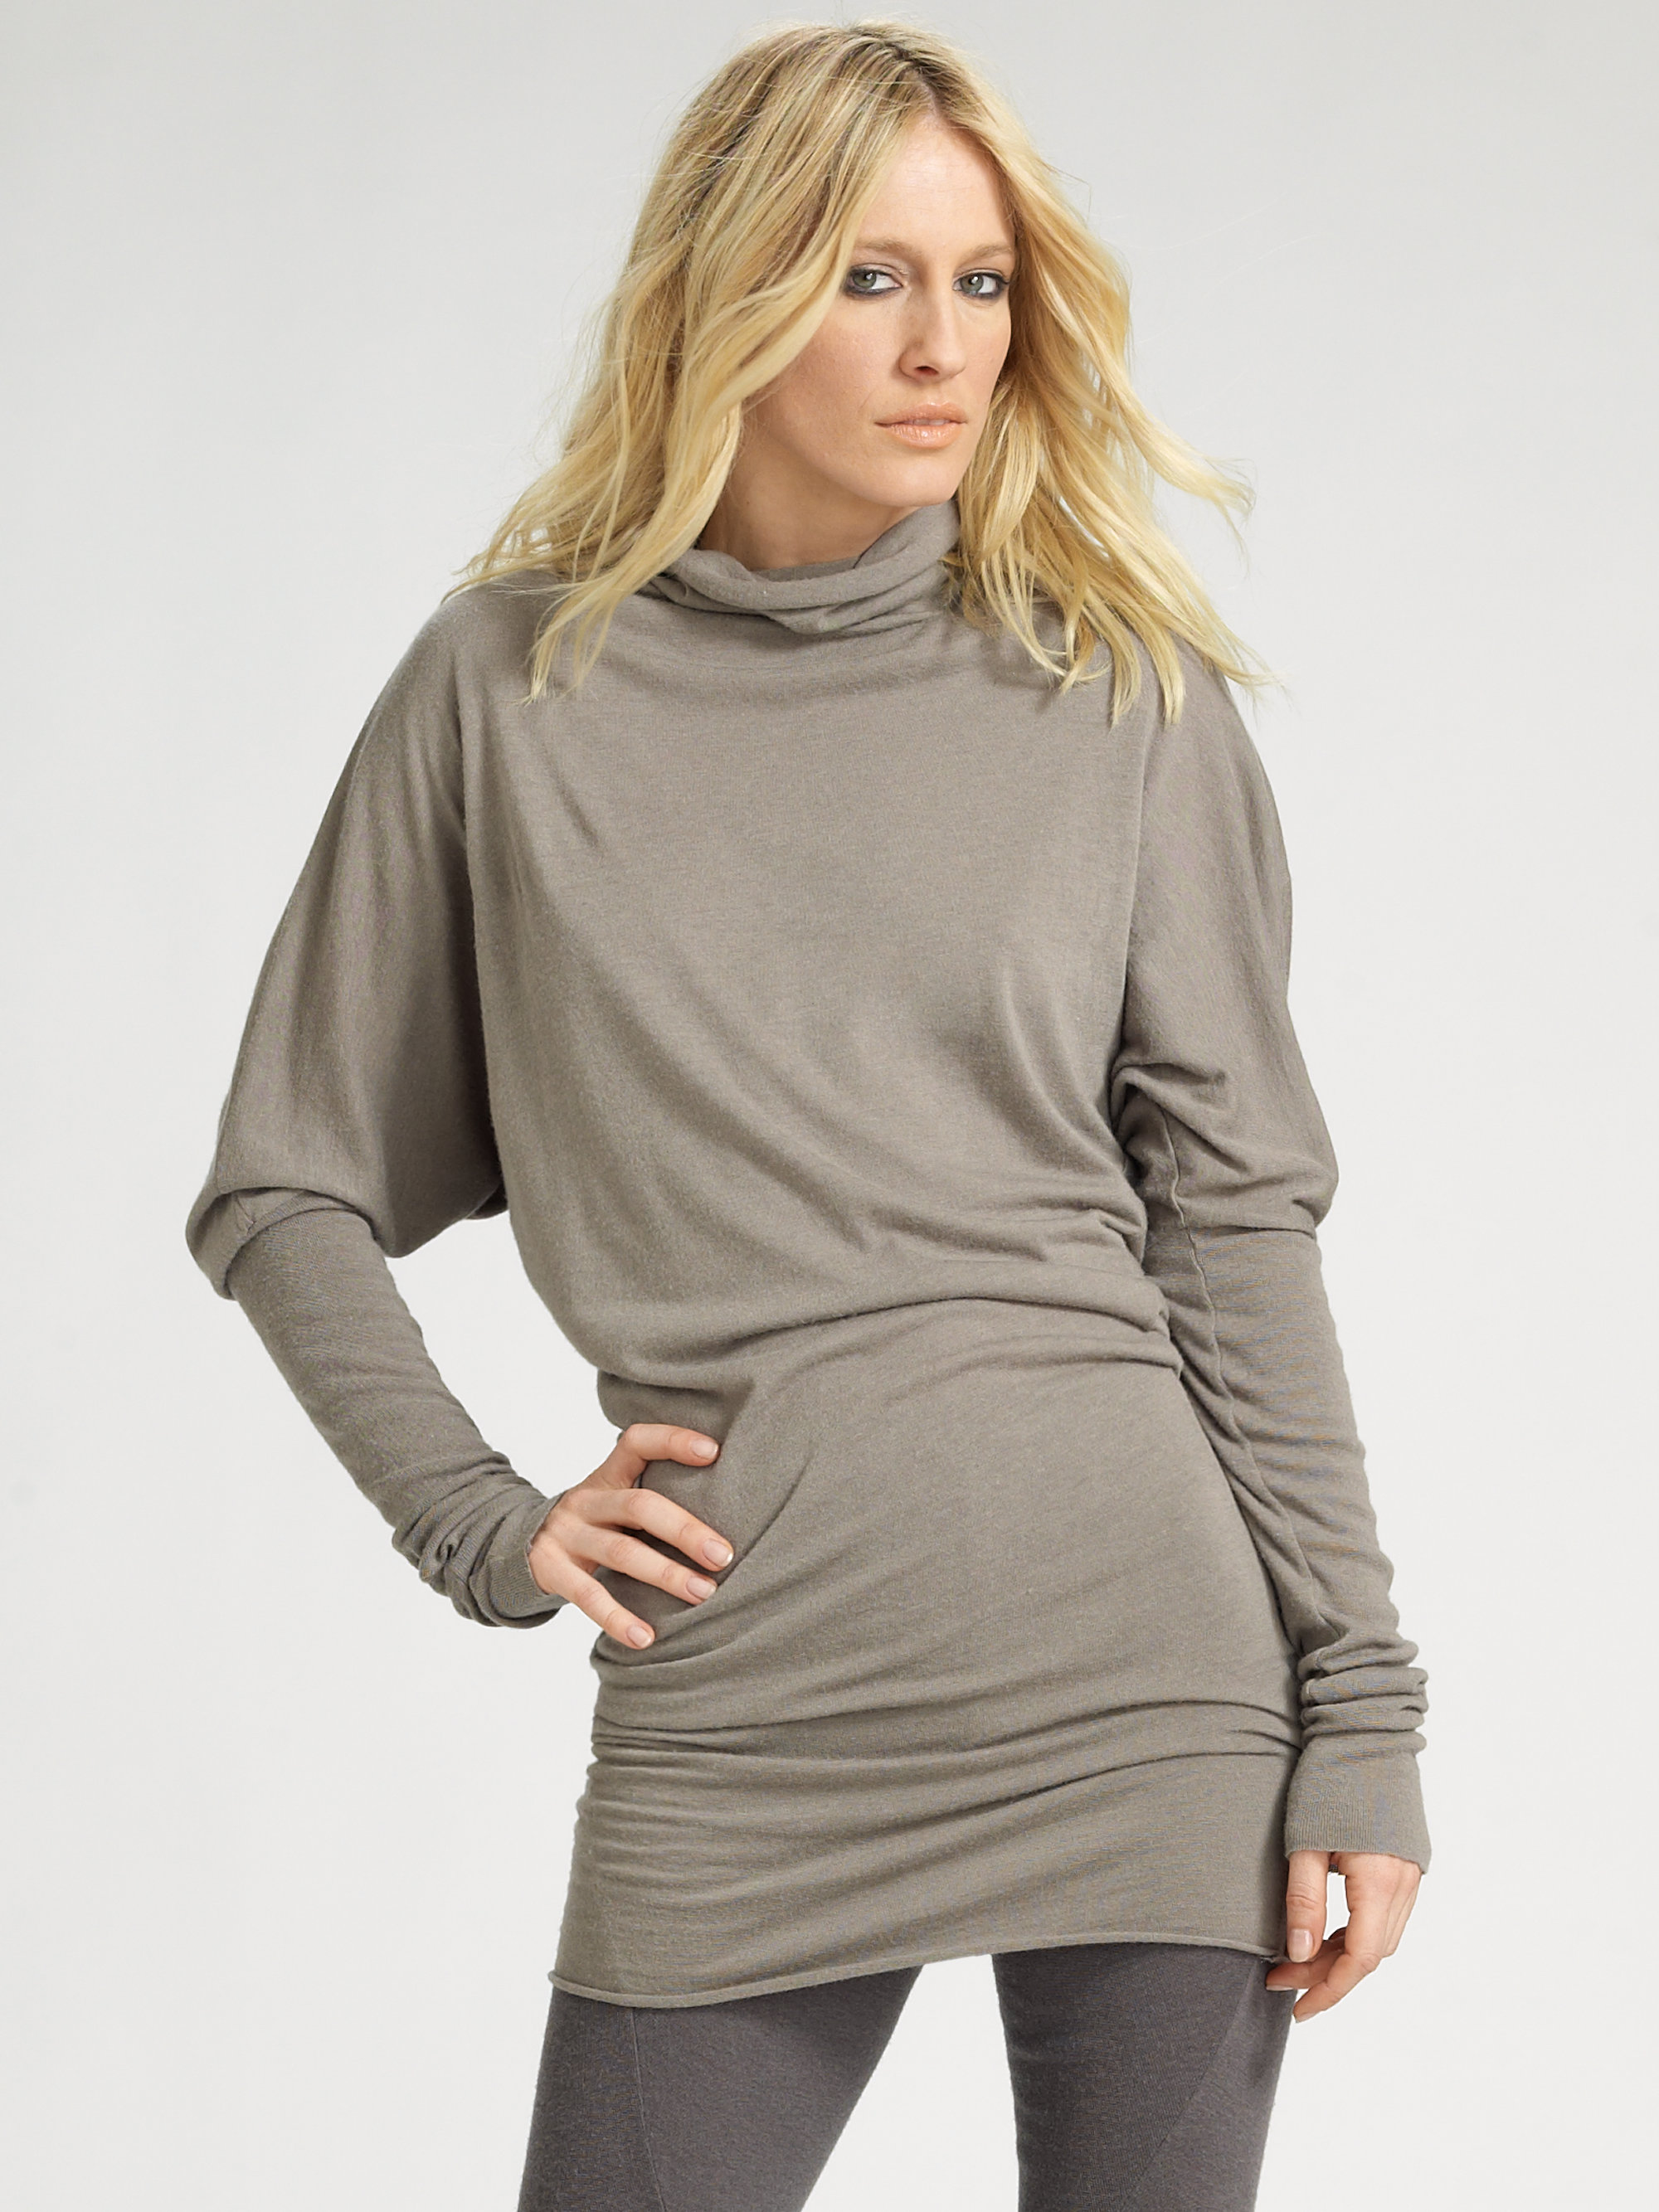 Rick owens lilies Dolman Sleeve Tunic Sweater in Gray | Lyst